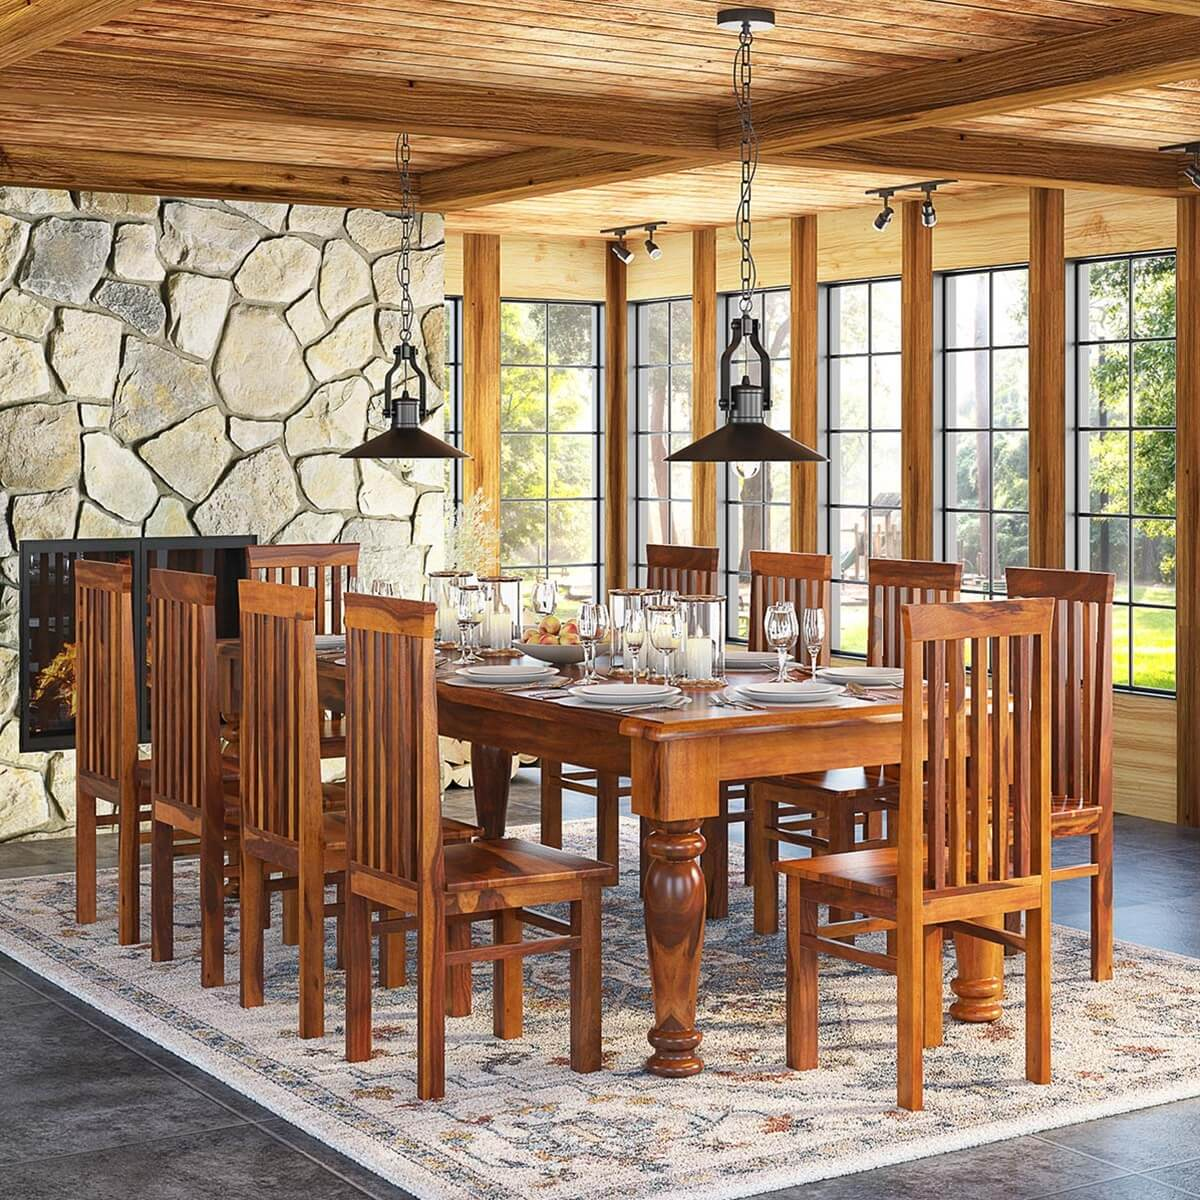 Large Rustic Dining Table amp Chair Set Seats 12